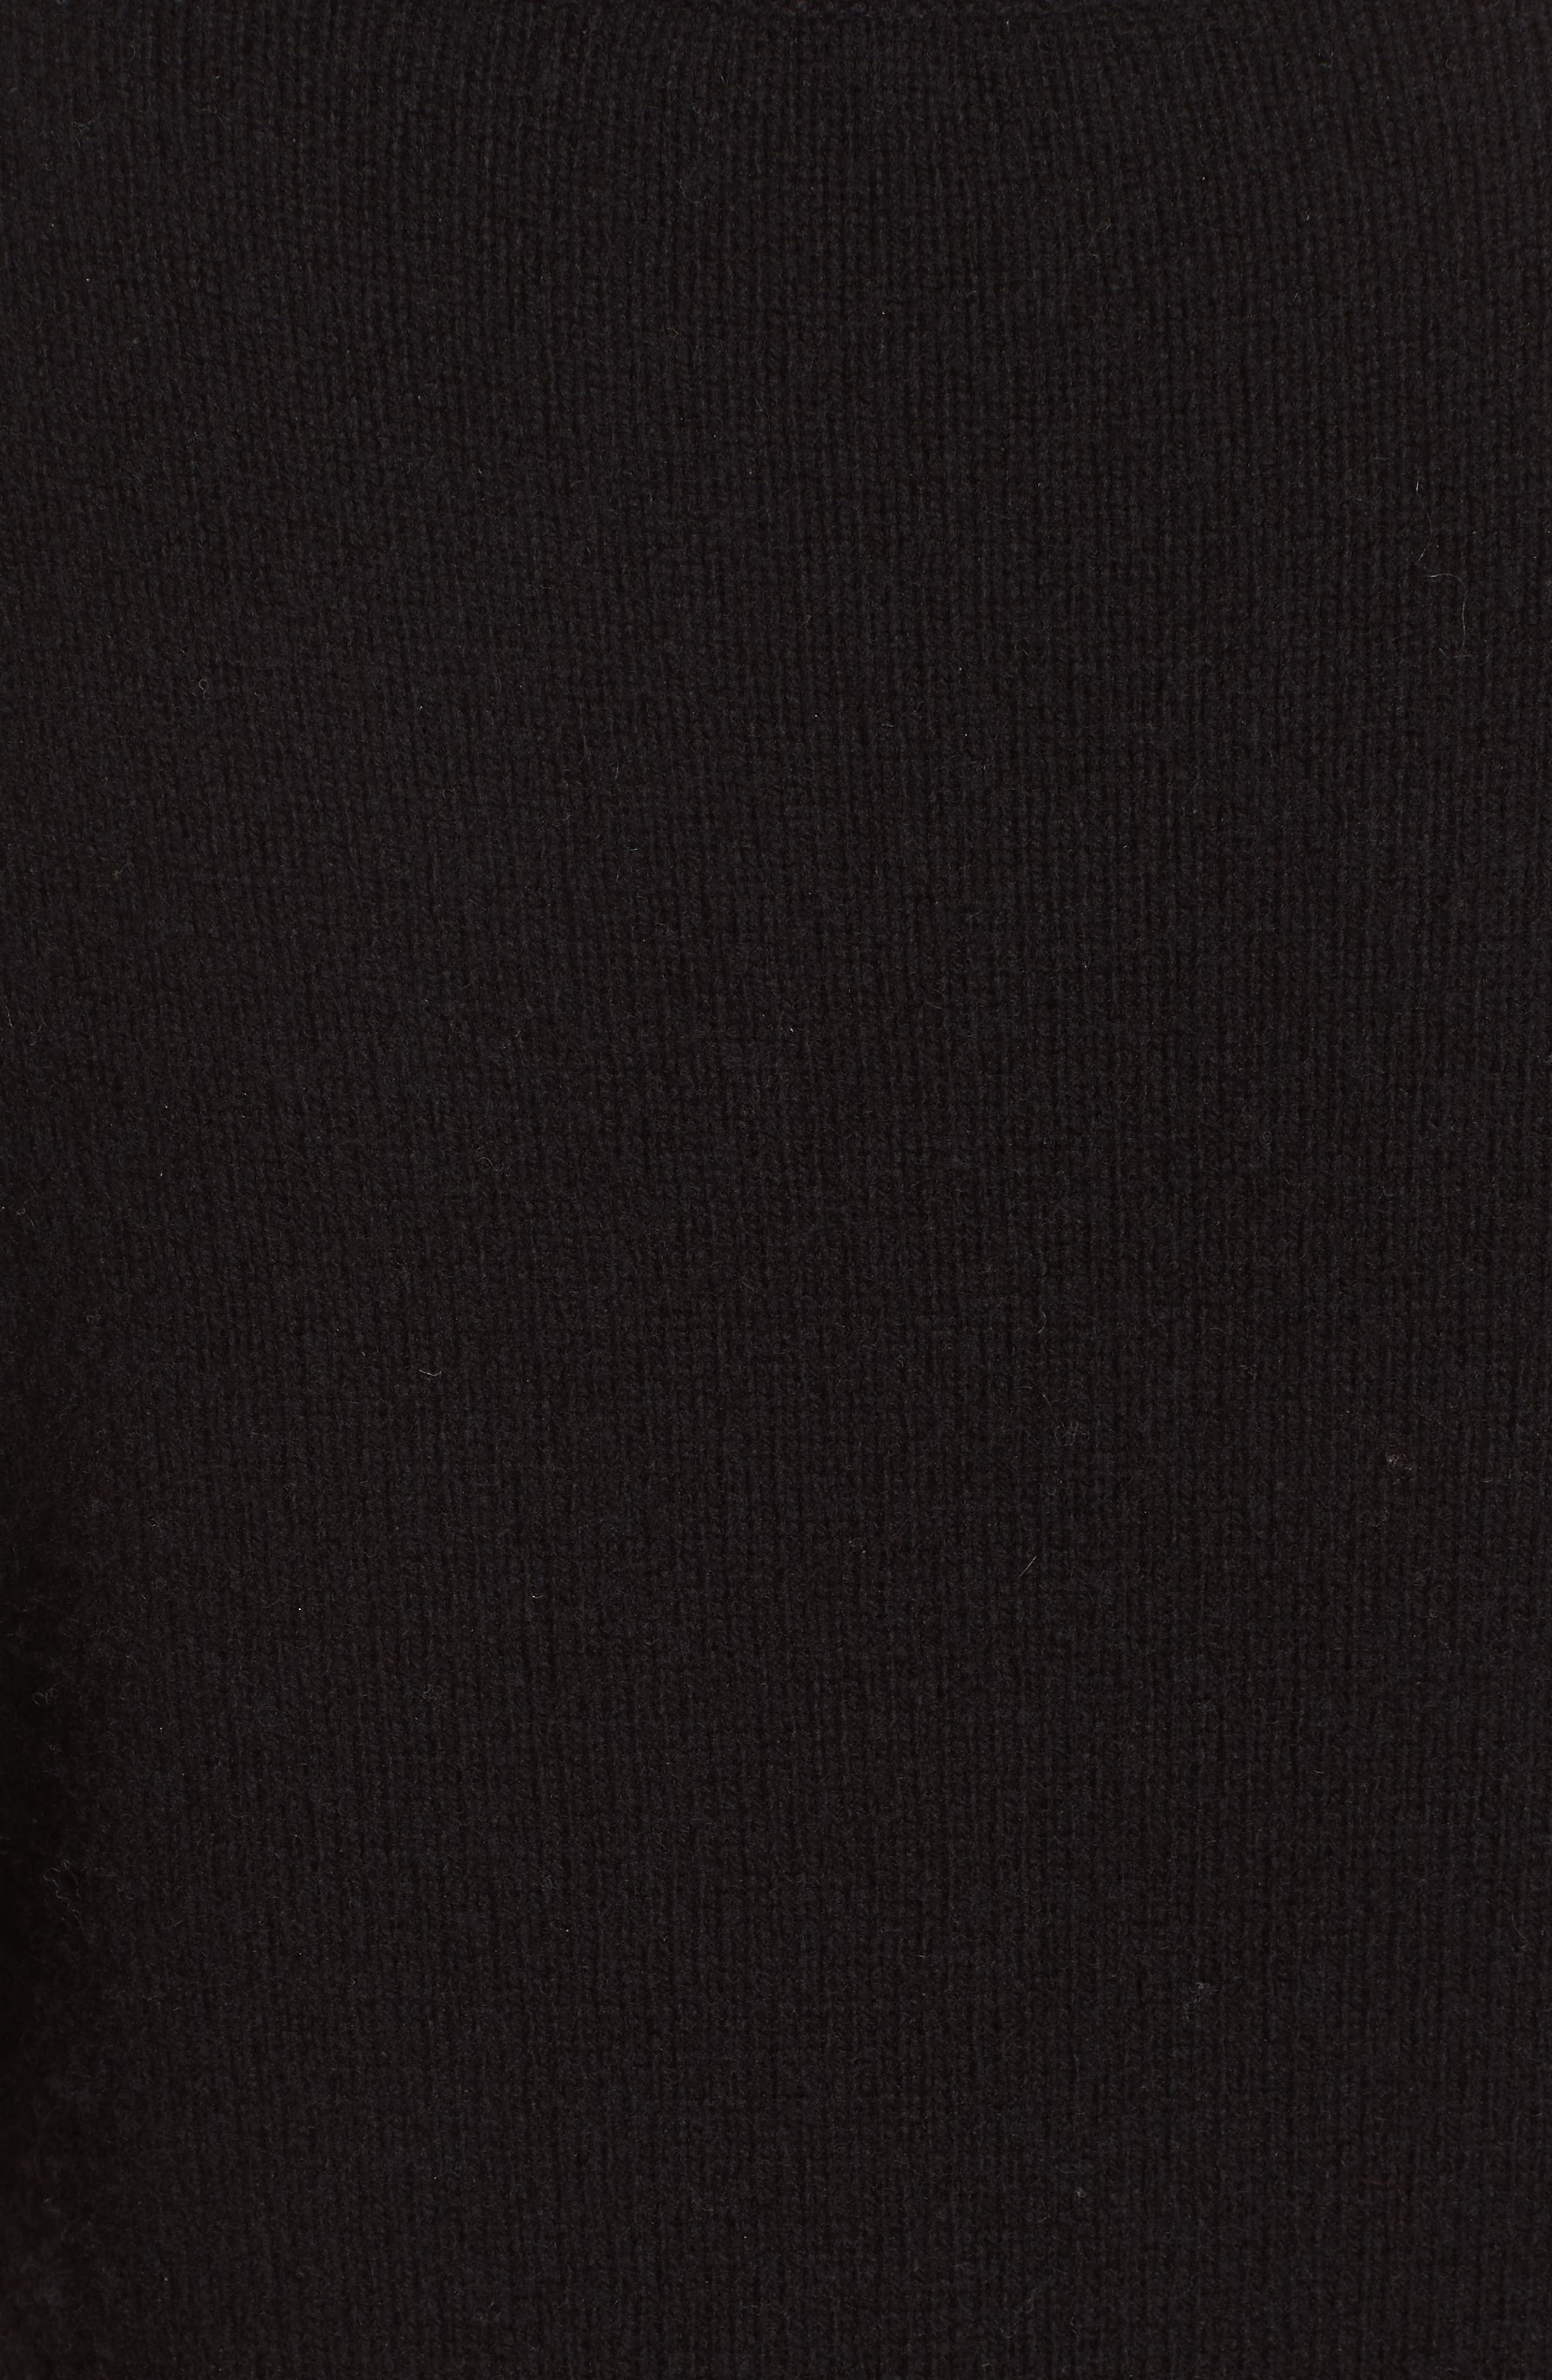 Emilie Embroidered Sweater,                             Alternate thumbnail 3, color,                             Black